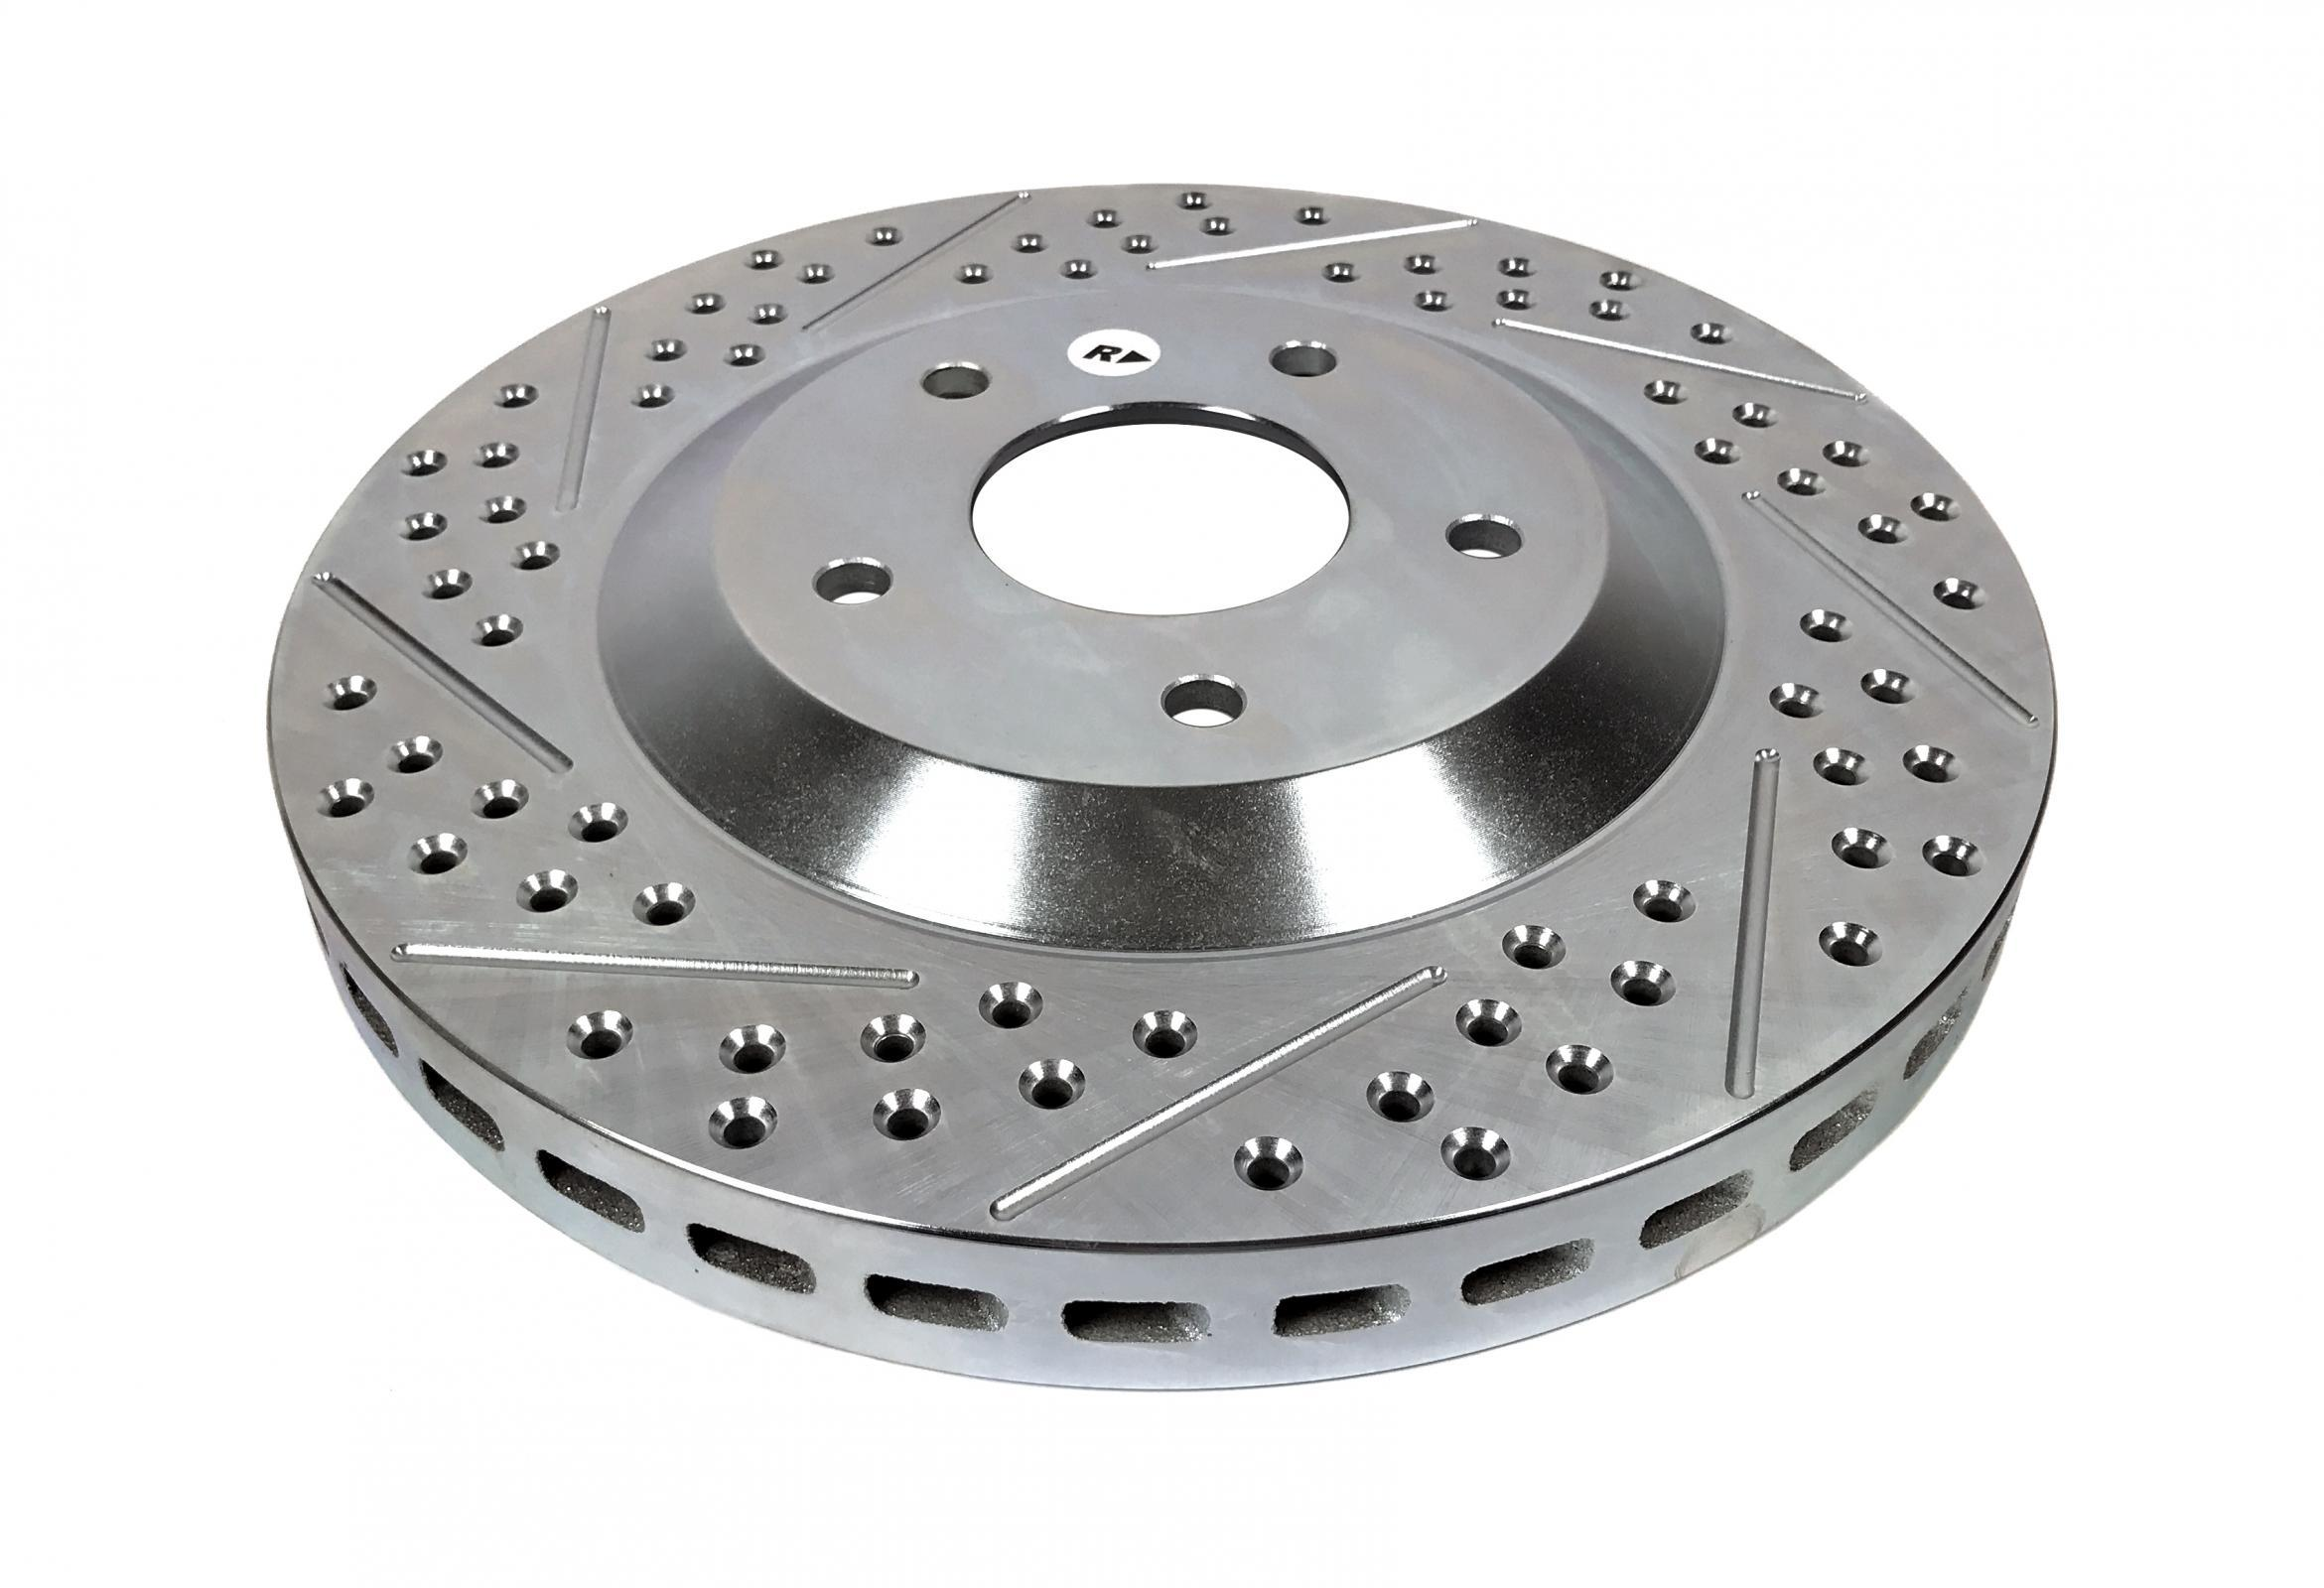 Baer Brakes 55043-020 Brake Rotor, Sport, Directional / Drilled / Slotted, 321 mm OD, 5 x 120 mm Wheel Bolt Pattern, Iron, Natural, Pair